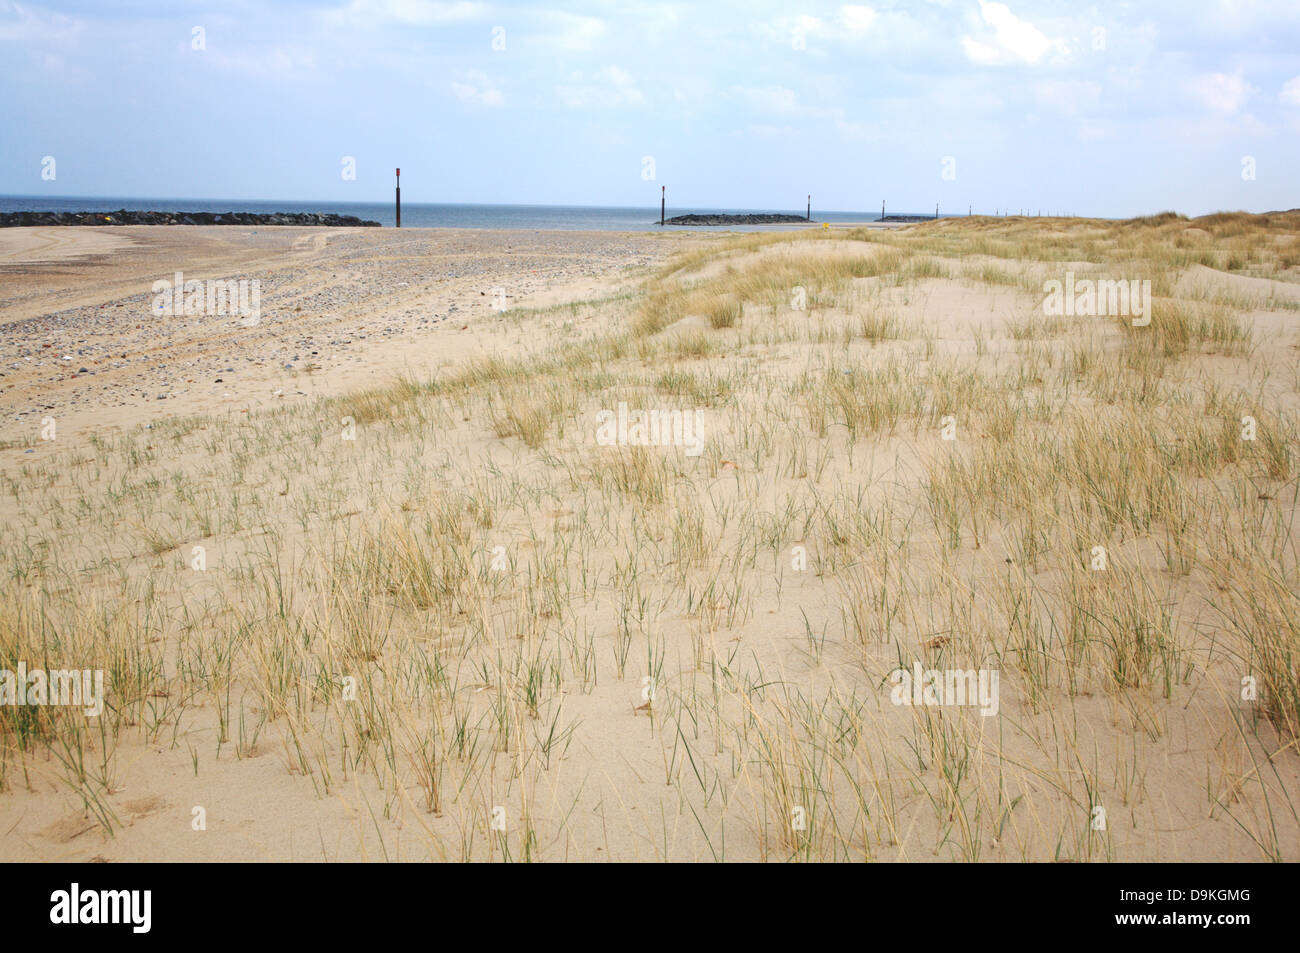 A view of marram grass colonizing the beach and arresting sand at Sea Palling, Norfolk, England, United Kingdom. - Stock Image